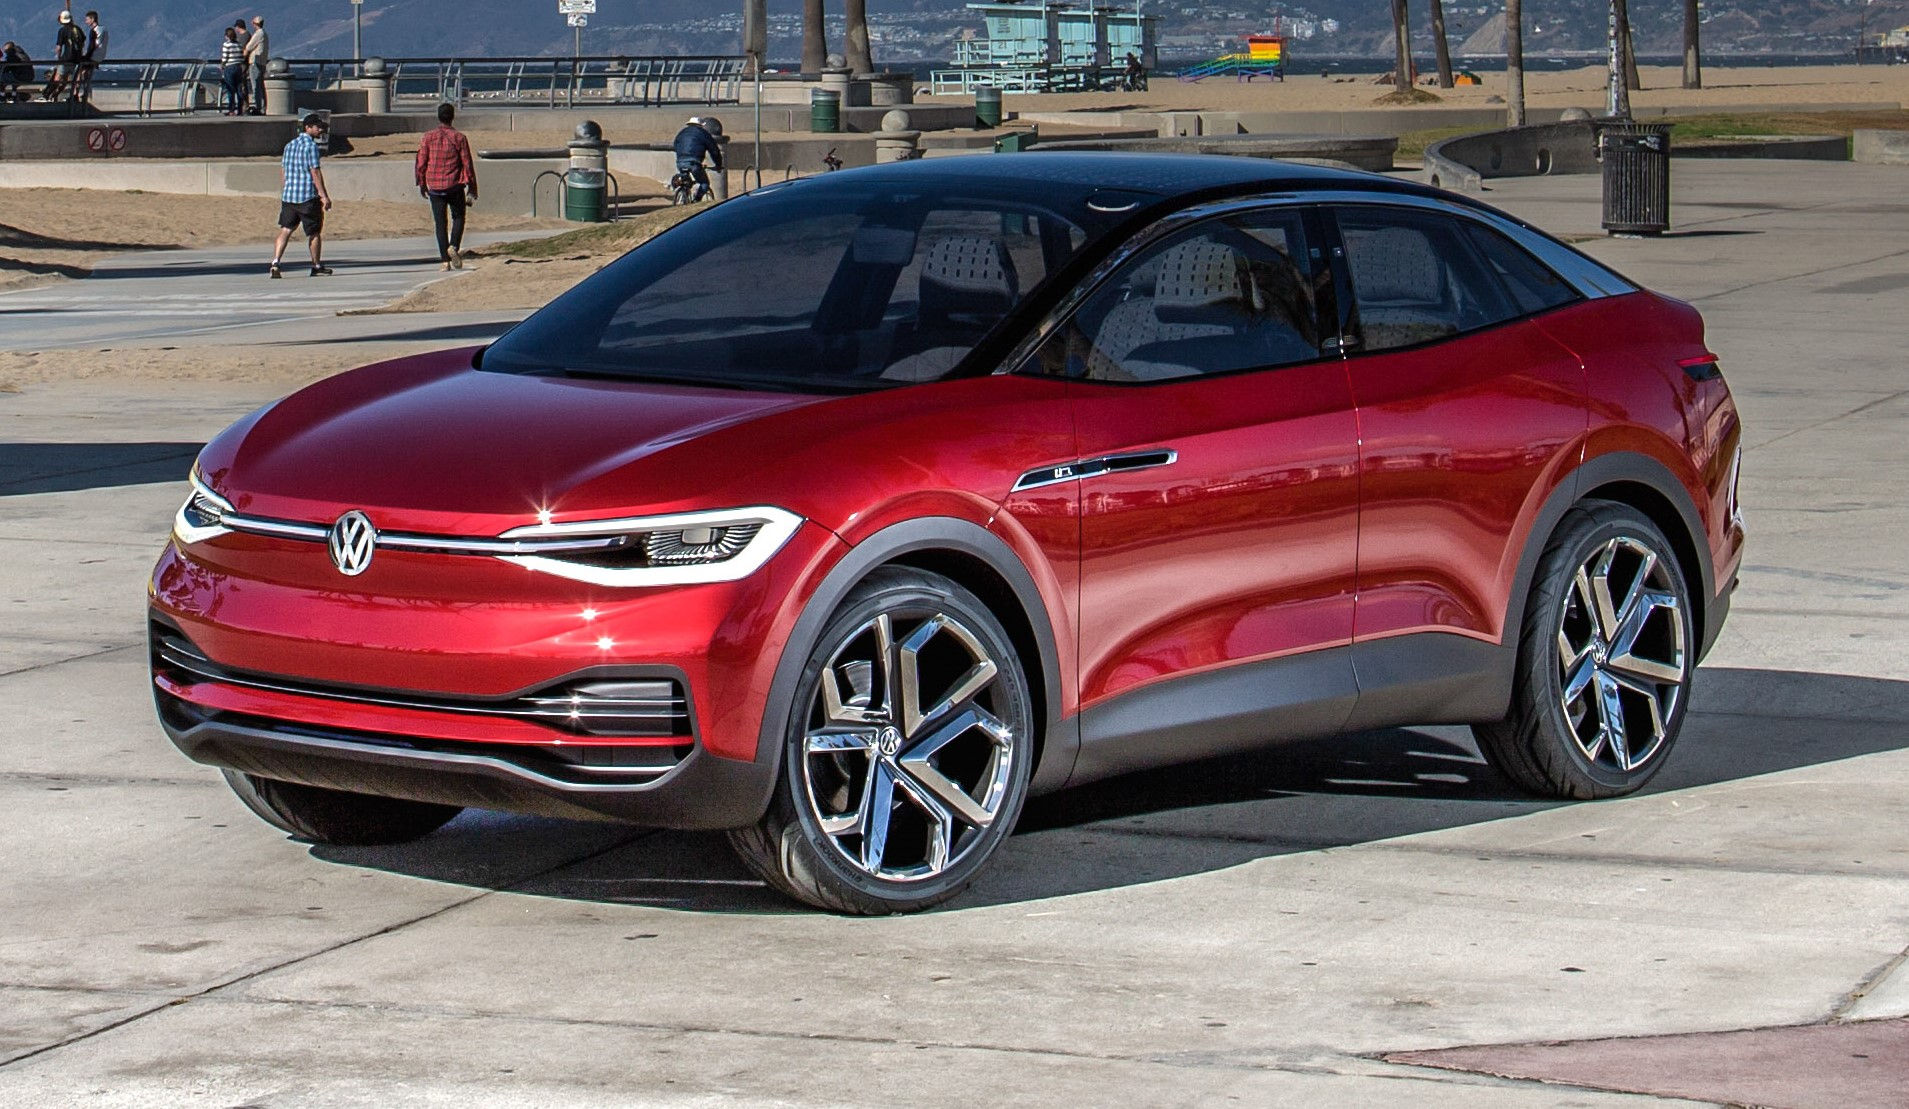 VW ID Crozz Electric Crossover SUV: Design, Release >> Volkswagen I D Crozz Compact Electric Suv Due To Launch In 2020